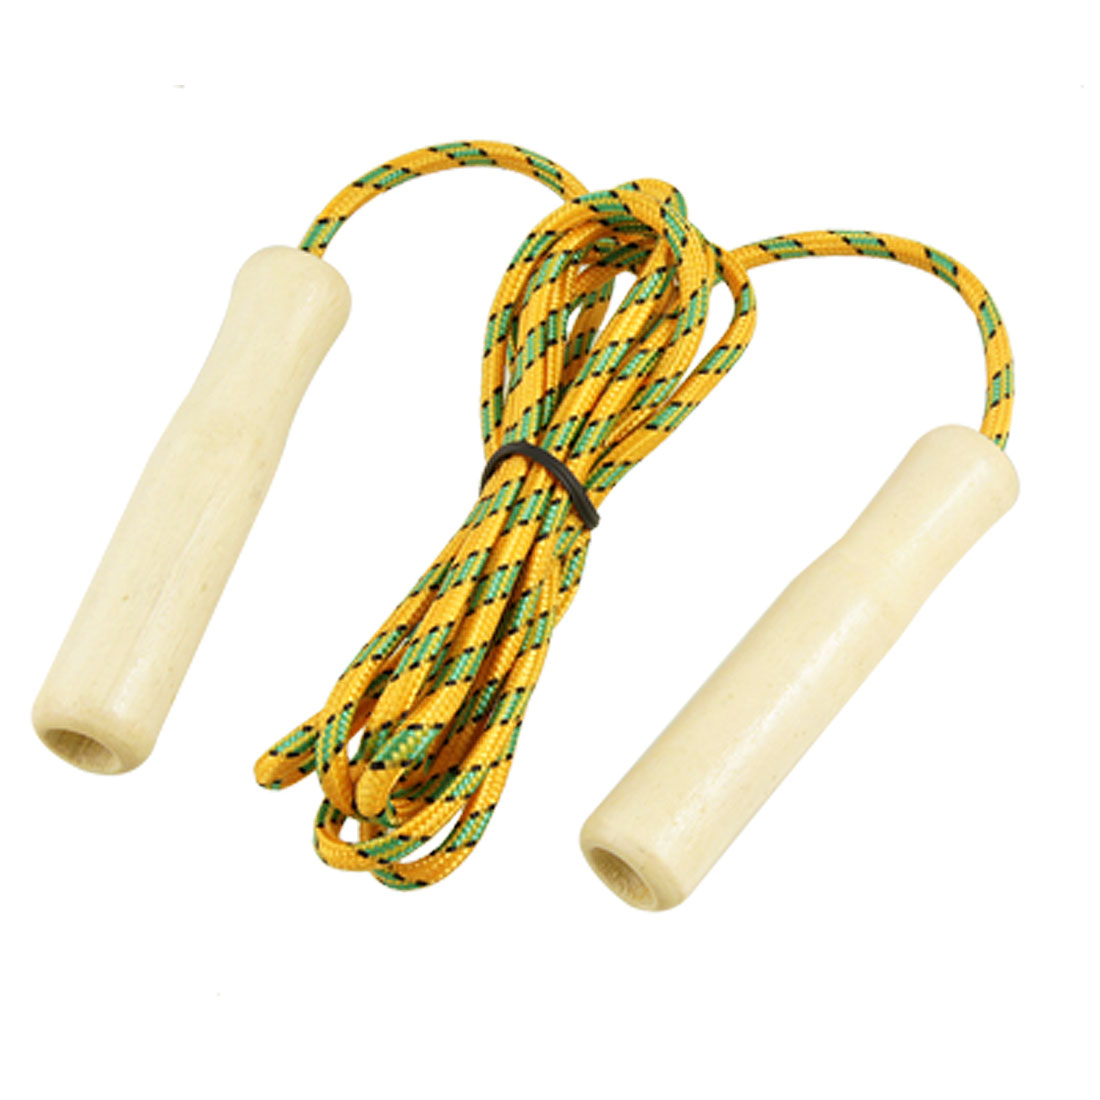 Wooden Handle Keep Health Yellow Green Jumping Skipping Rope 84.6""